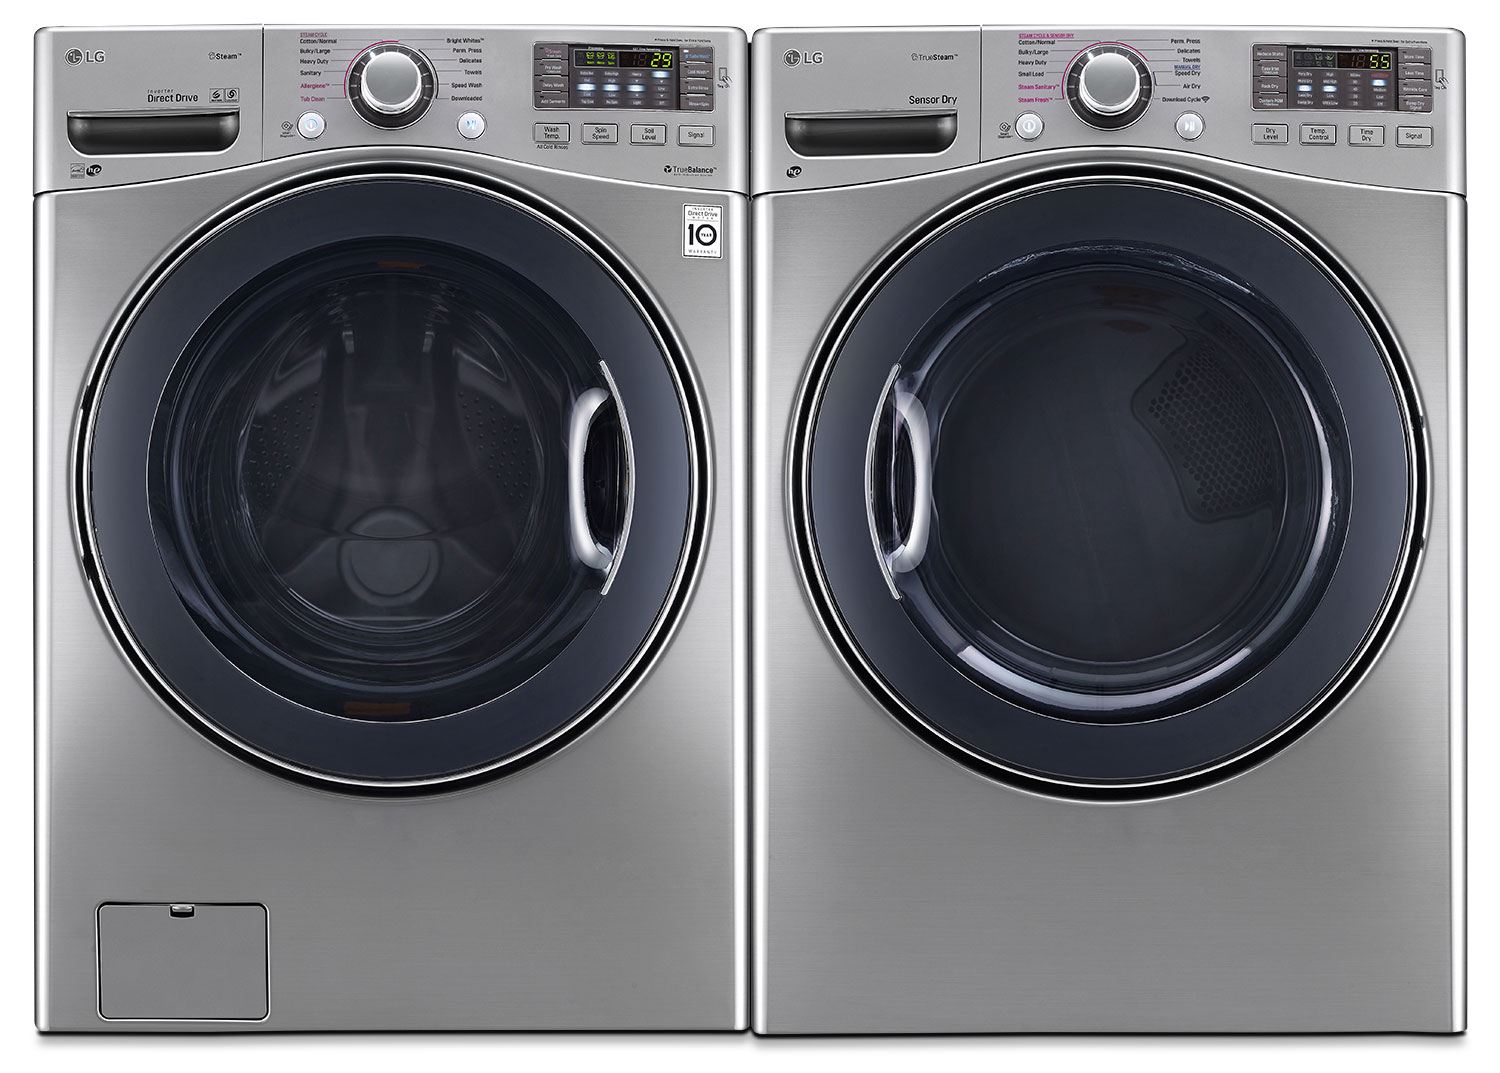 LG 5.2 Cu. Ft. Front-Load Washer and 7.4 Cu. Ft. Electric Steam Dryer – Graphite Steel